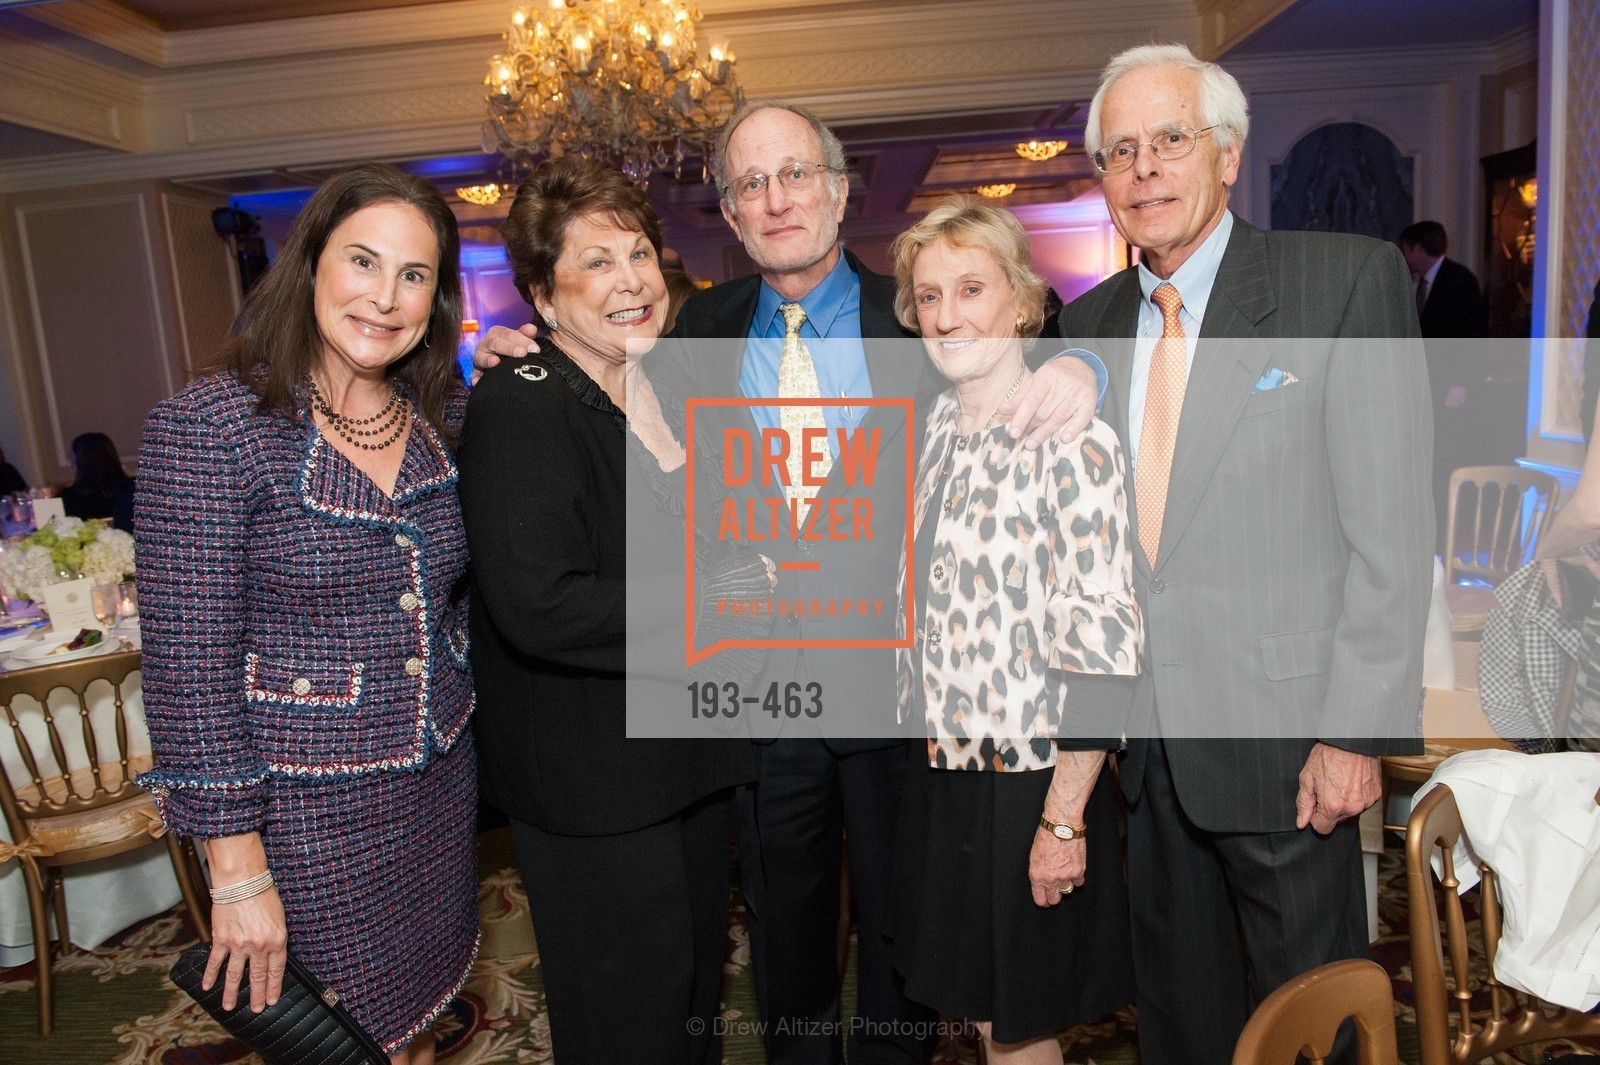 Julie Young, Joelle Benioff, Jeffrey Golden, Nancy Bechtle, Joachim Bechtle, UCSF Nina Ireland Program for Lung Health Dinner, US. The Terrace Room, The Ritz-Carlton Hotel, January 15th, 2014,Drew Altizer, Drew Altizer Photography, full-service agency, private events, San Francisco photographer, photographer california